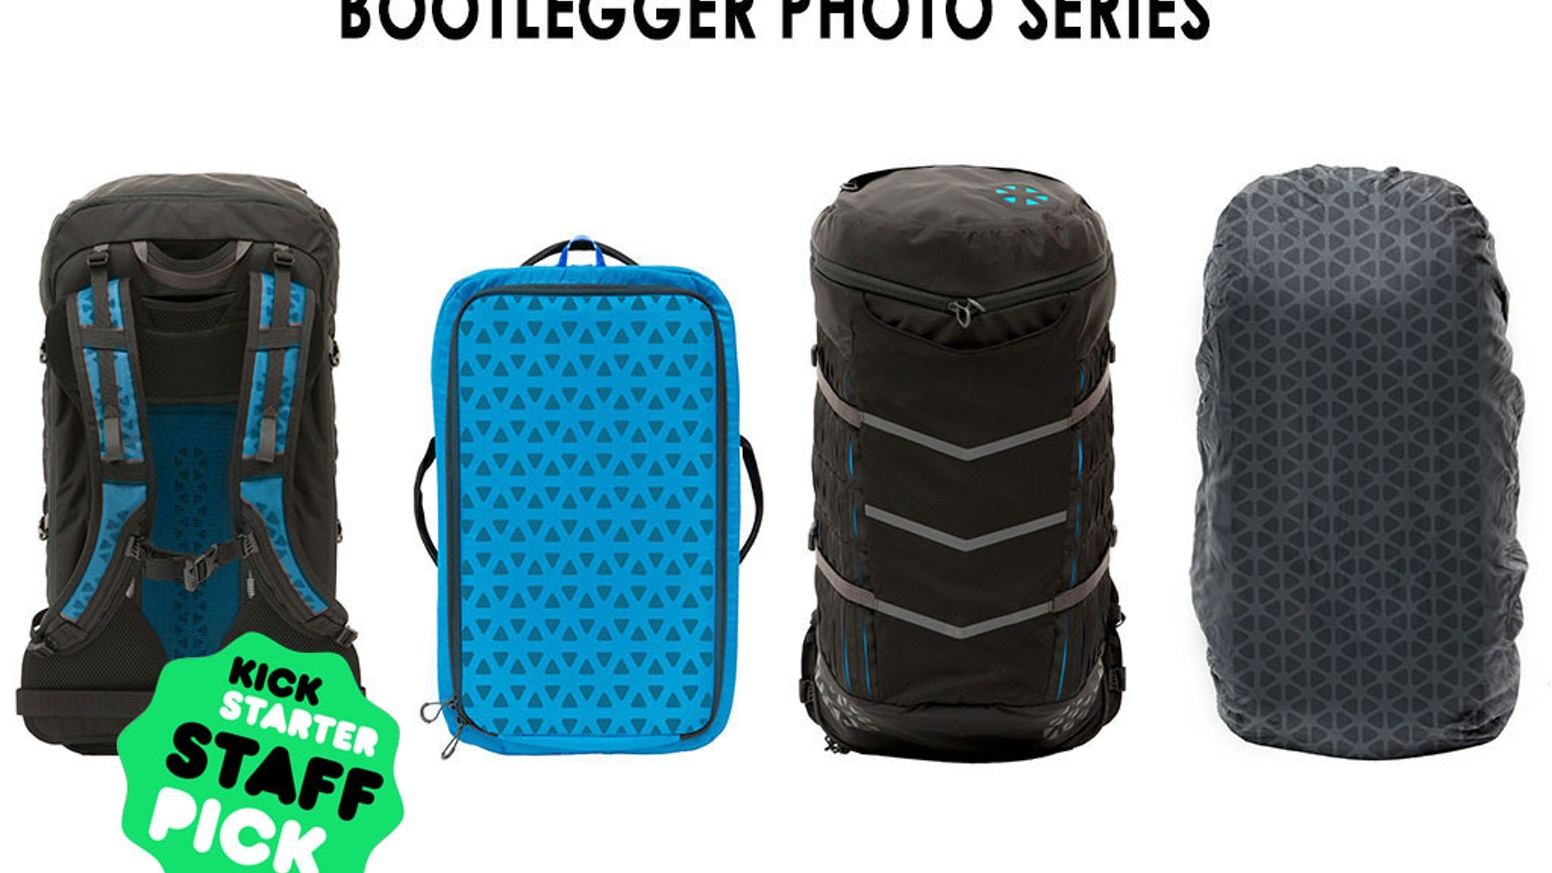 cf9609a6167f Let us introduce our first modular camera pack for outdoor adventures built  on the successfully funded Bootlegger Modular Pack System.